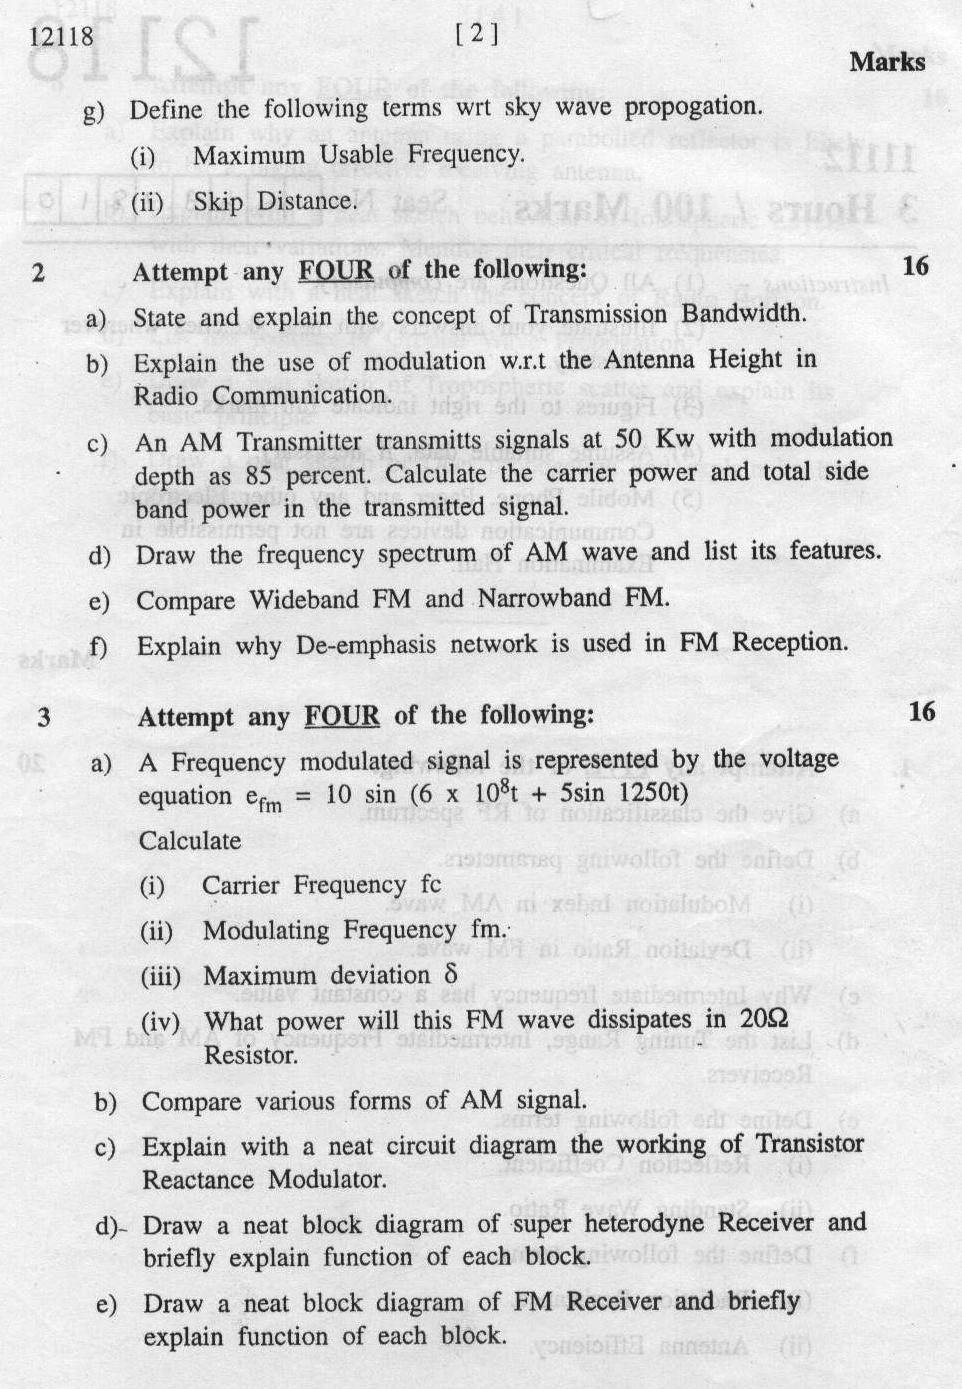 Maharashtra State Board of Technical Education MSBTE Question paper for Diploma in Electronics ...